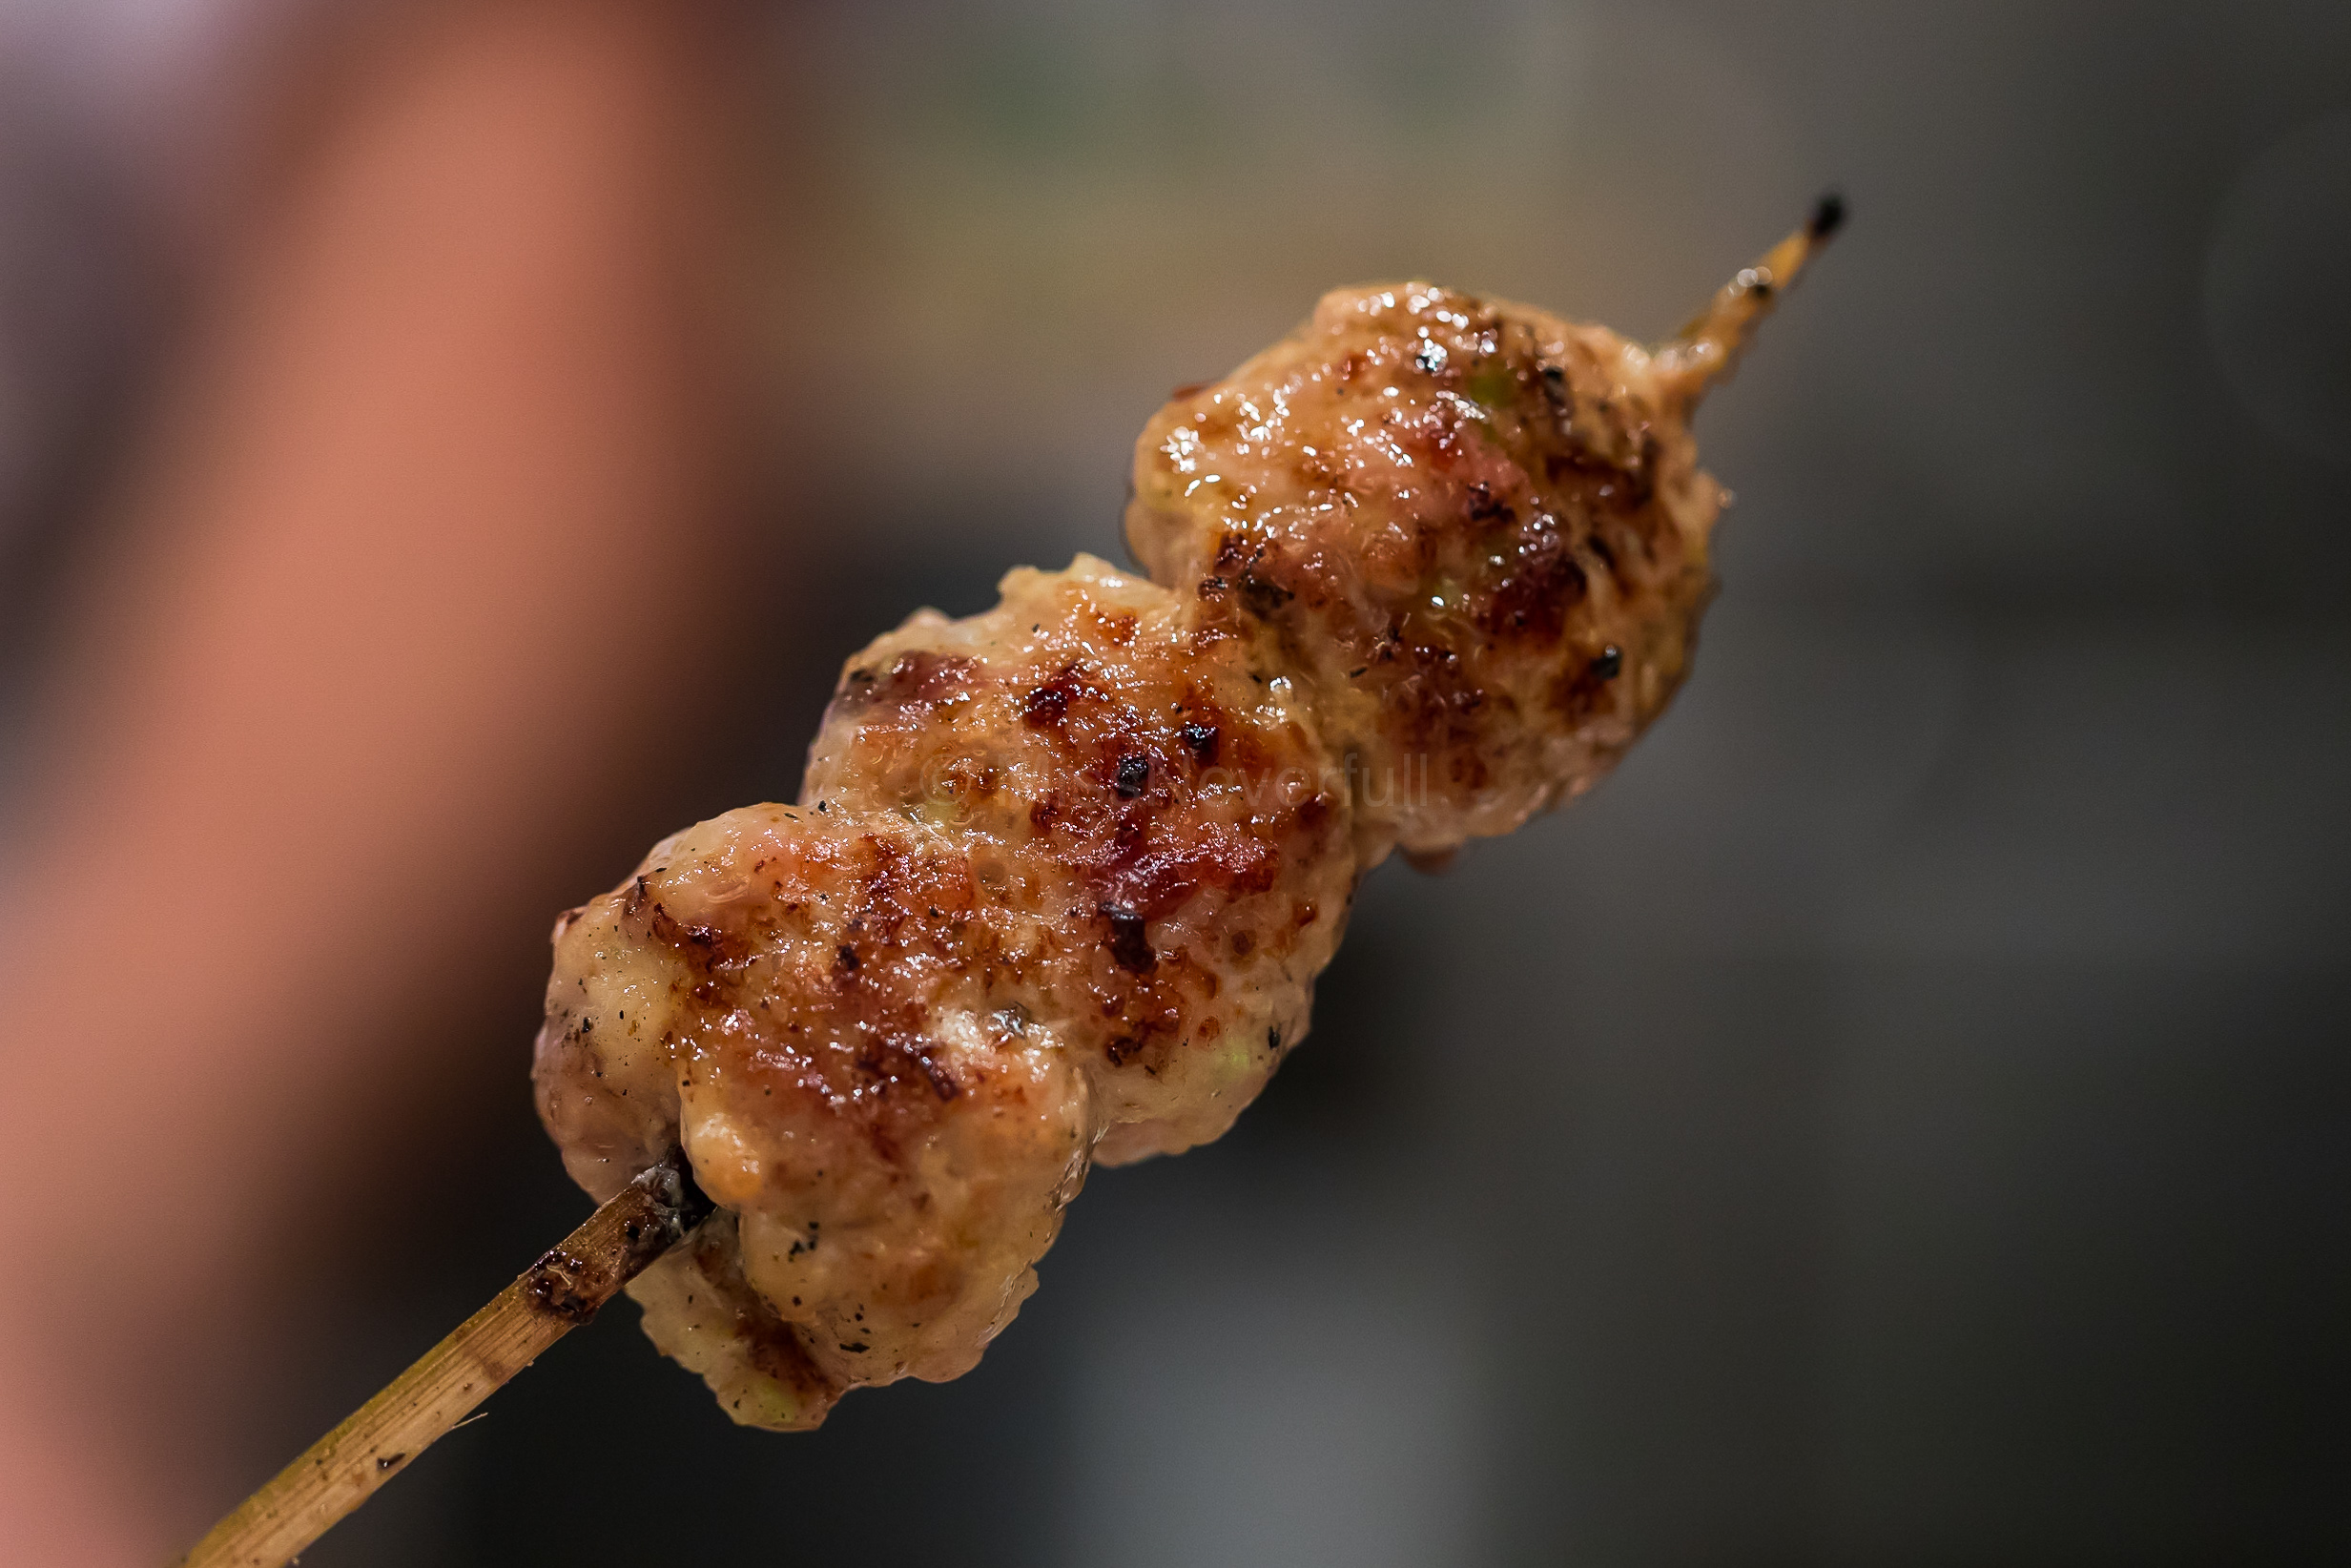 12. Tsukune (chicken meatballs) | つくね